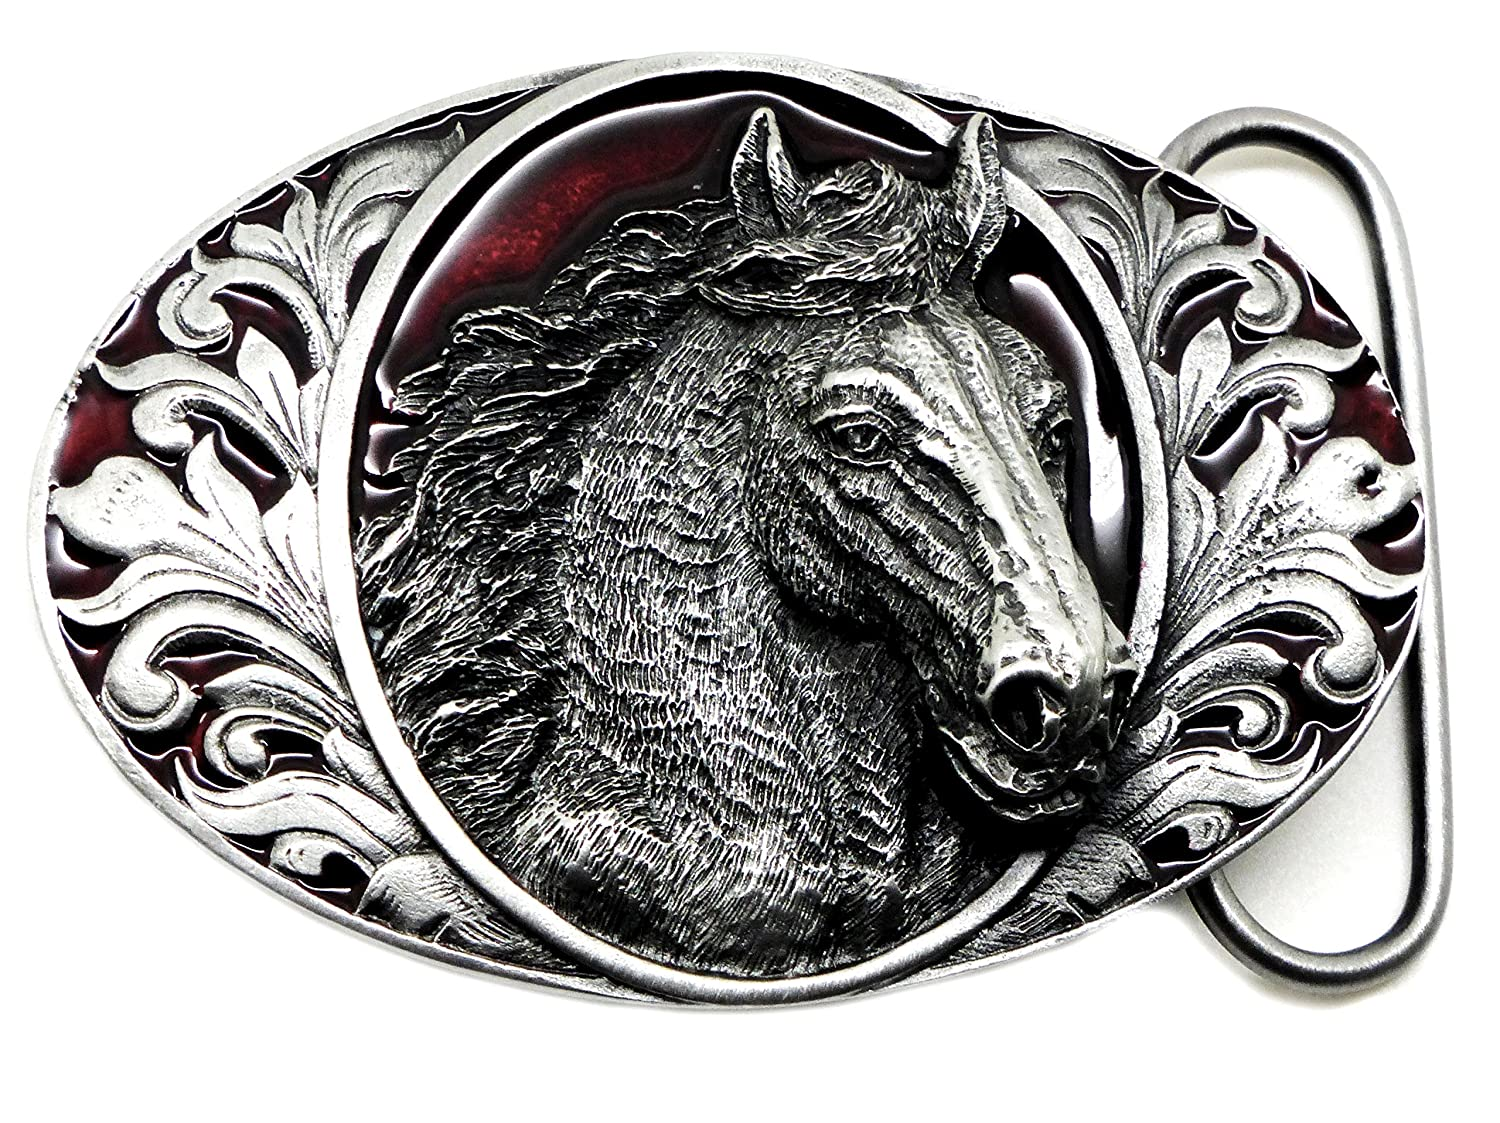 3D Horse Head Belt Buckle With Floral Patterned Background Authentic Bergamot Branded Product BER I 76 E